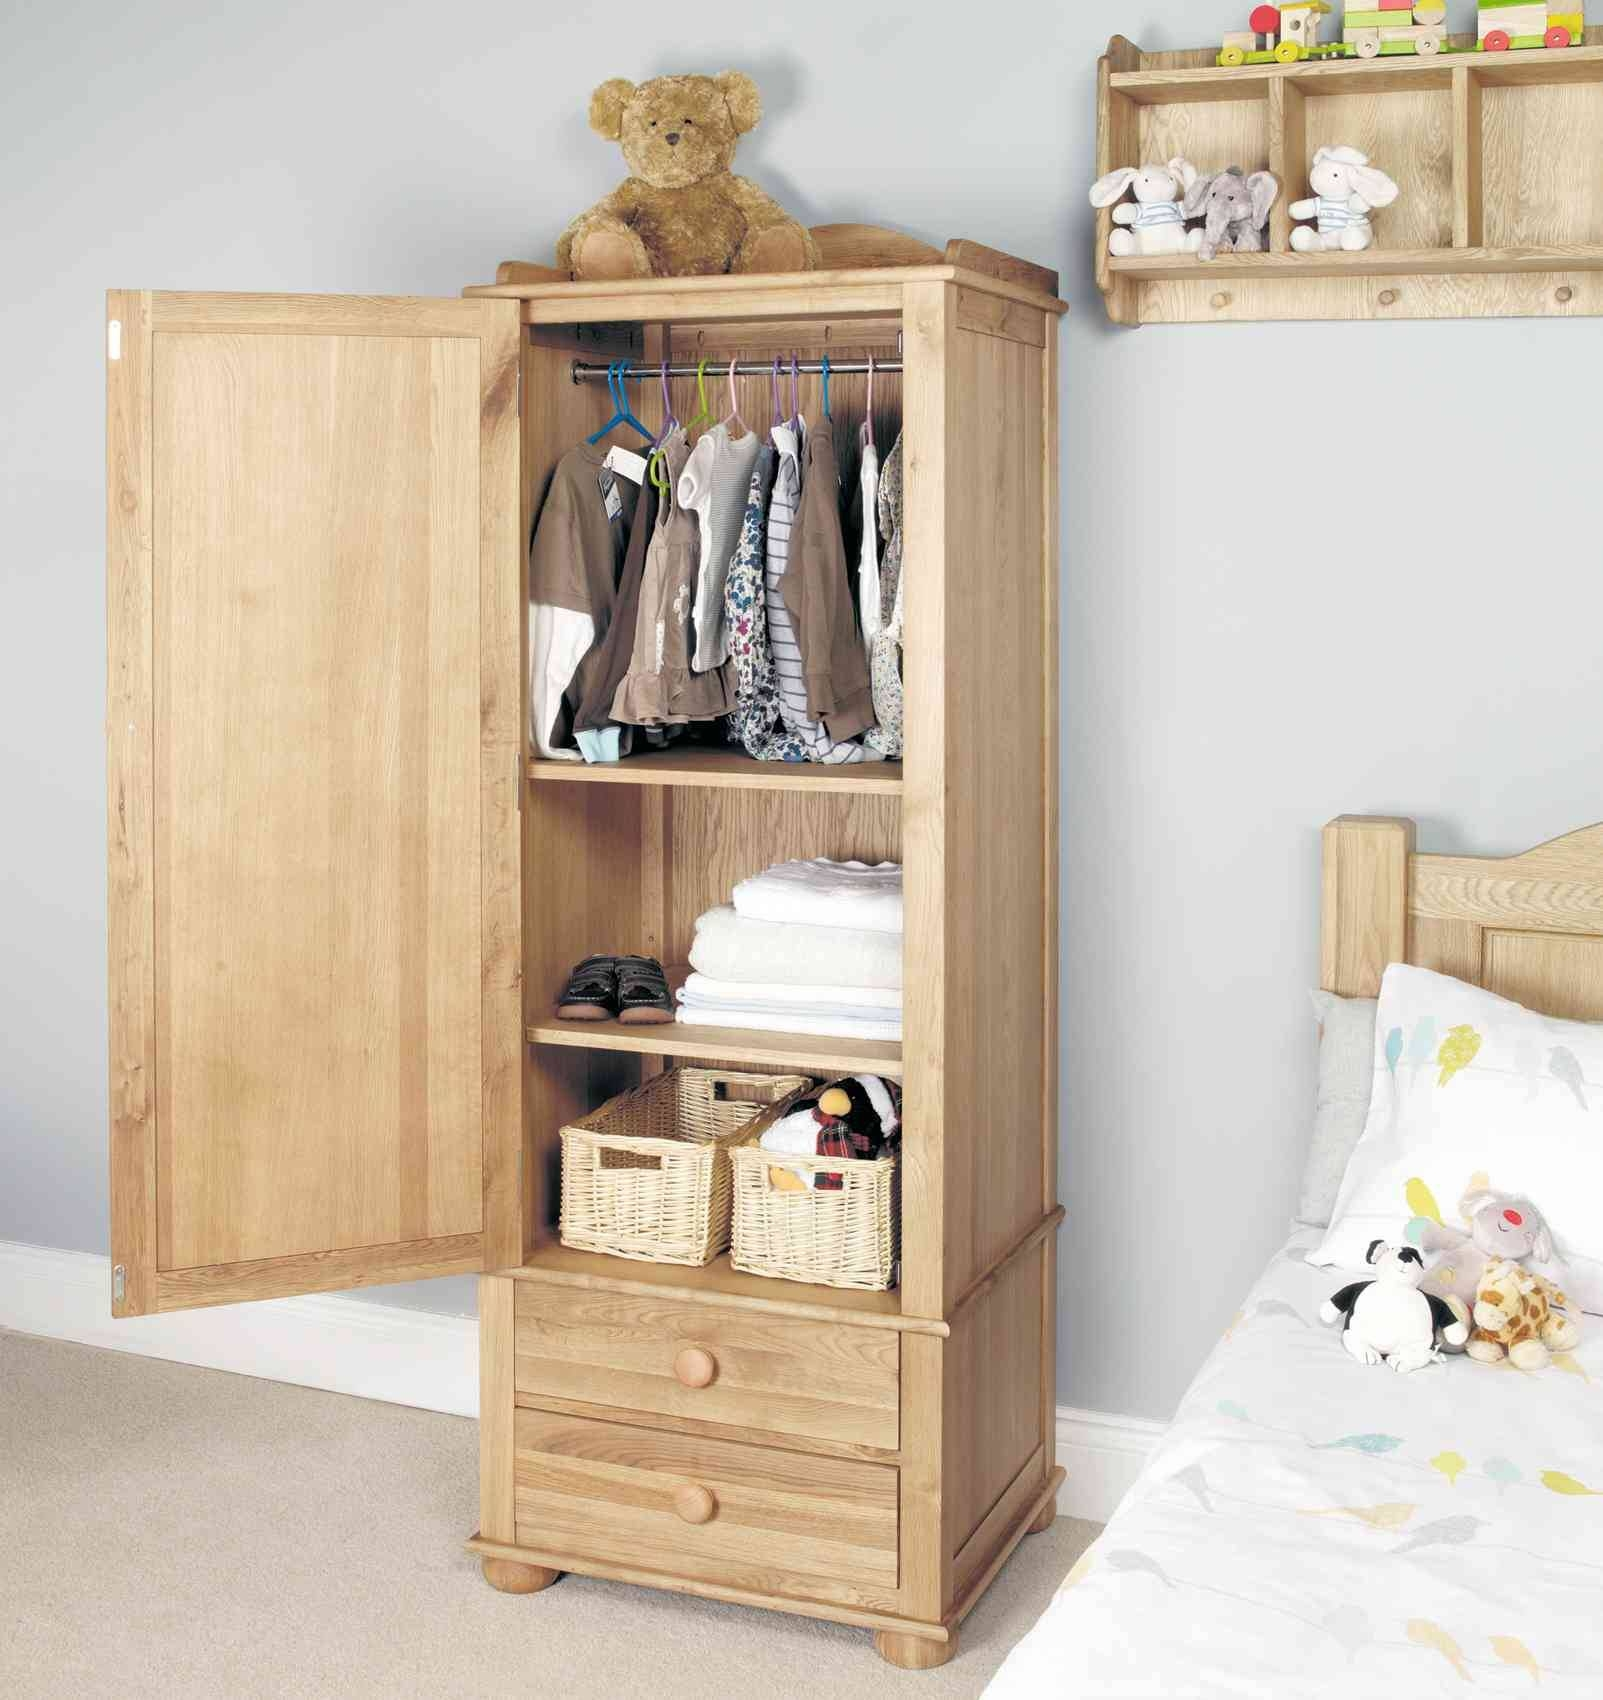 Children's Oak Single Wardrobe | Hampshire Furniture inside Childrens Wardrobes With Drawers And Shelves (Image 7 of 30)